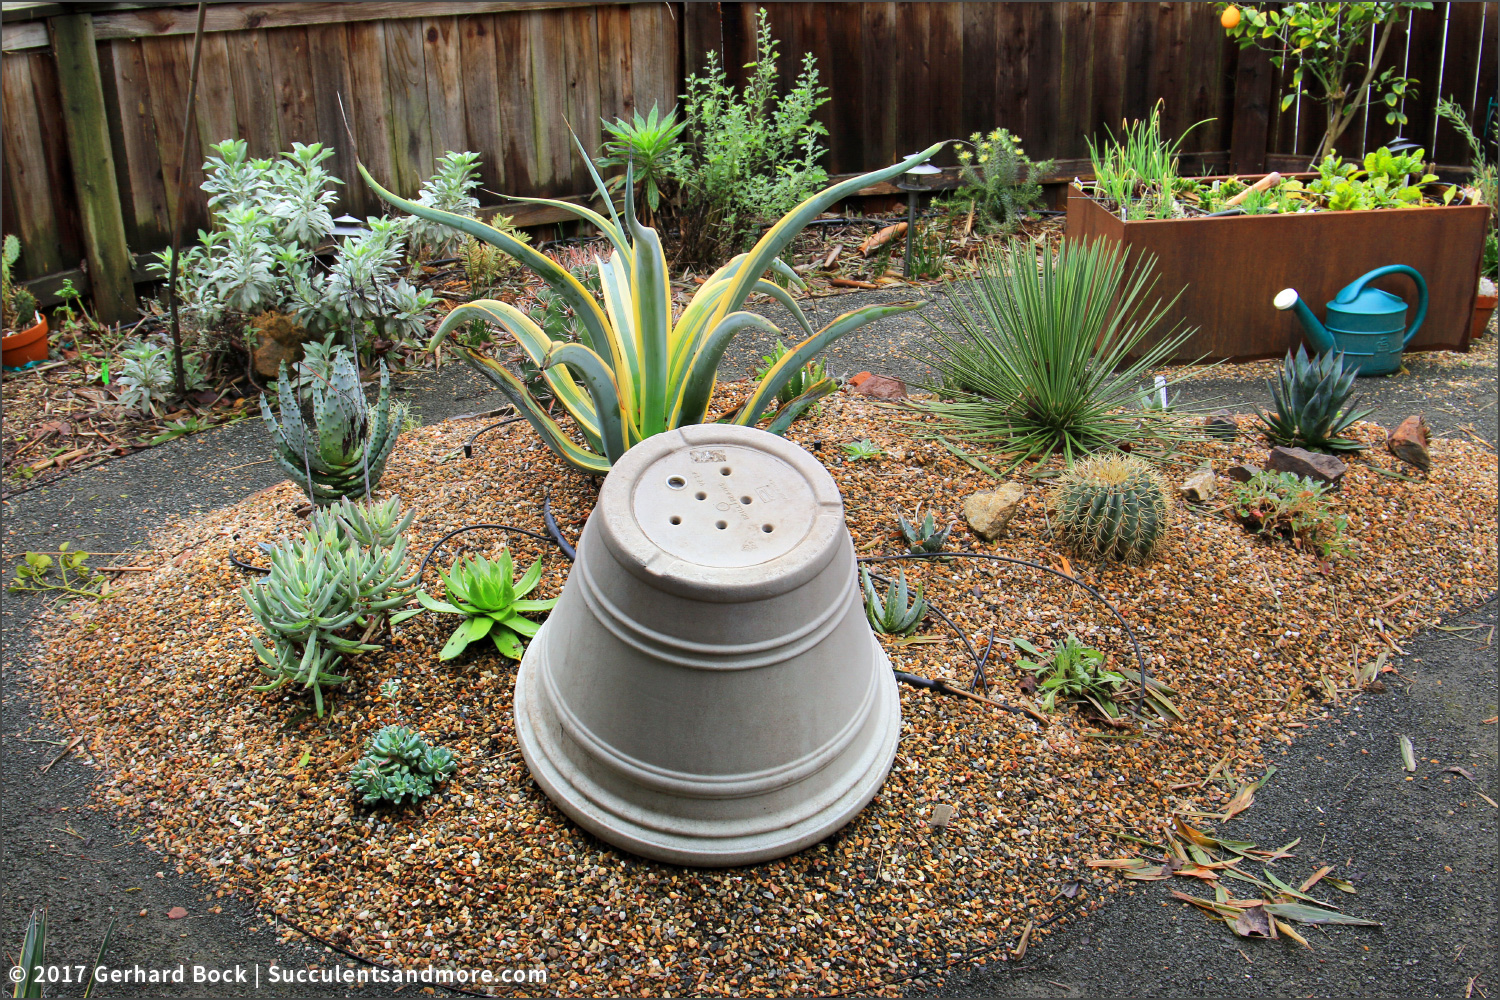 Succulents and More: Succulents rotting in drought-busting rain